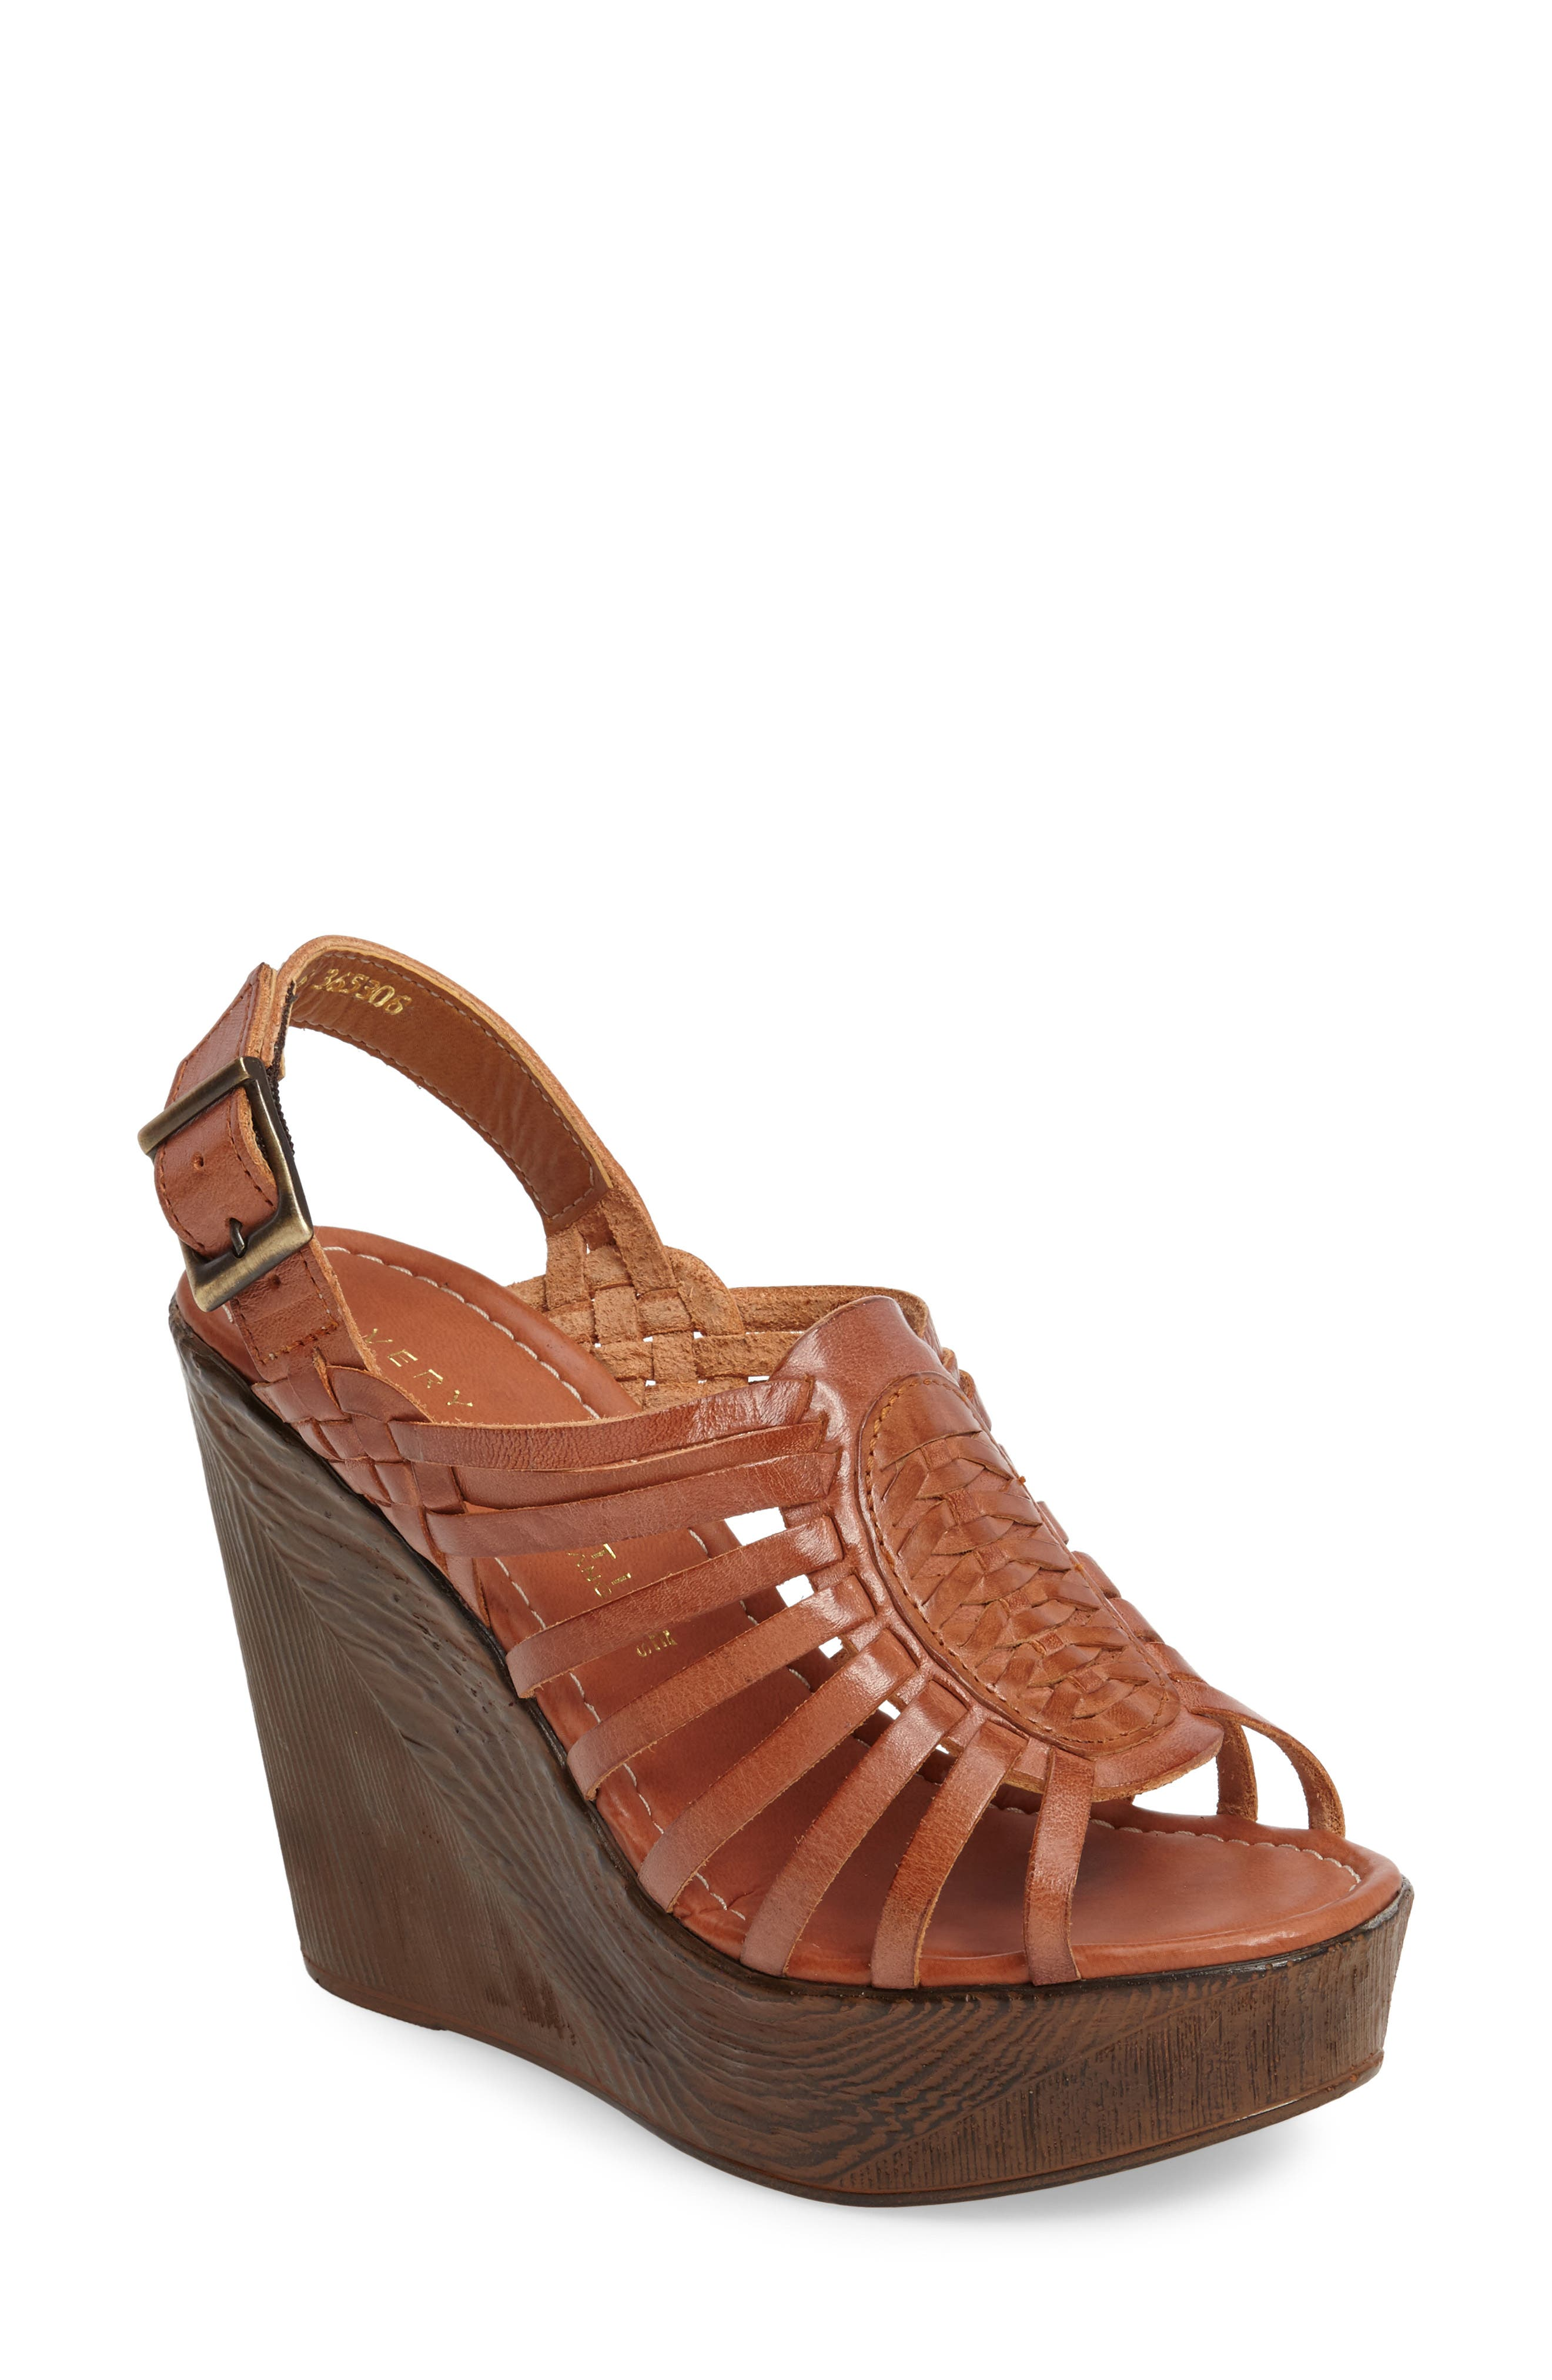 Prolific Wedge Sandal,                         Main,                         color, Tan Leather